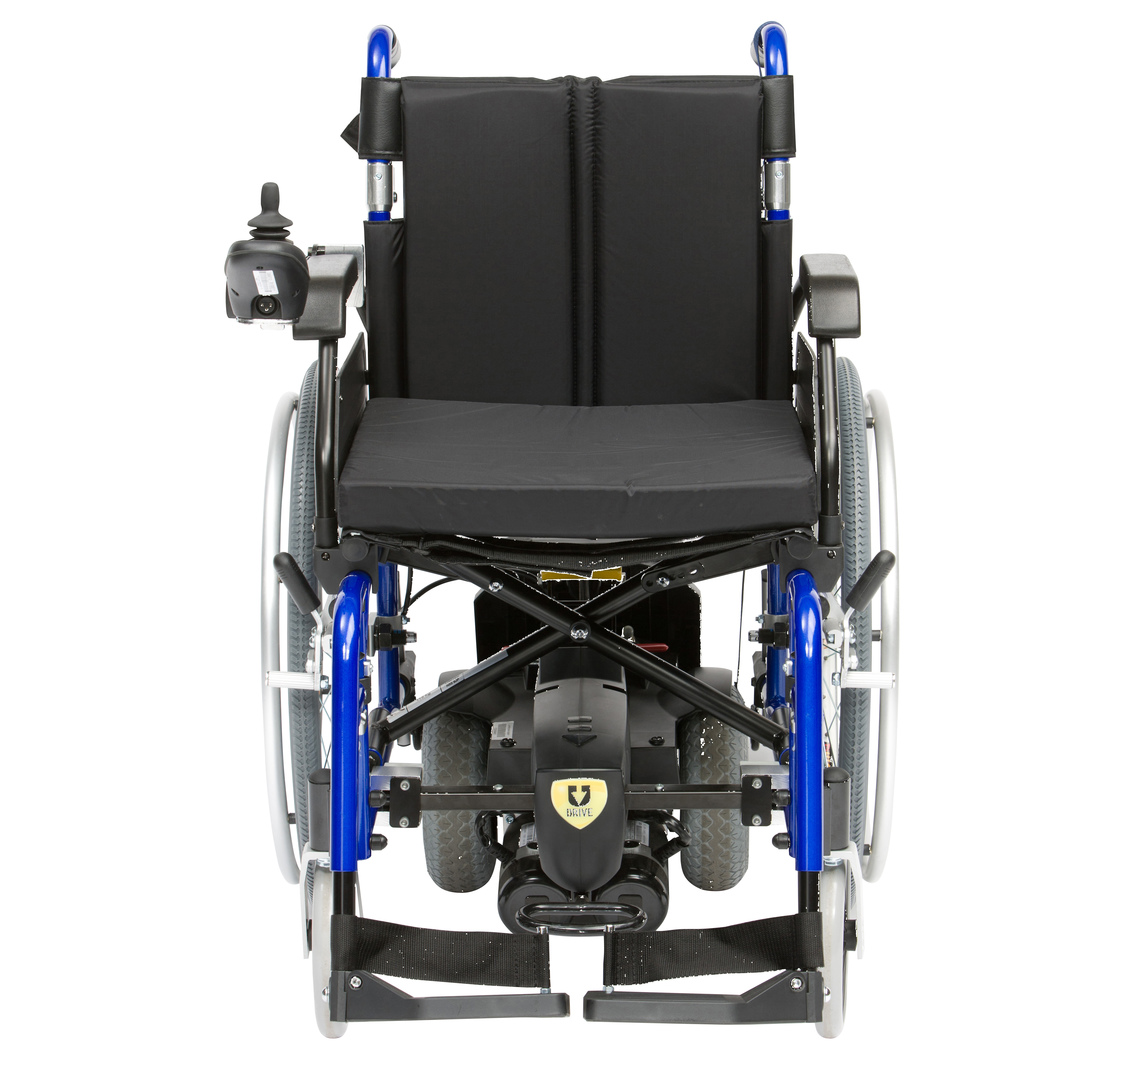 power chair accessories bags covers rentals online wheelchair storage bag world of scooters manchester